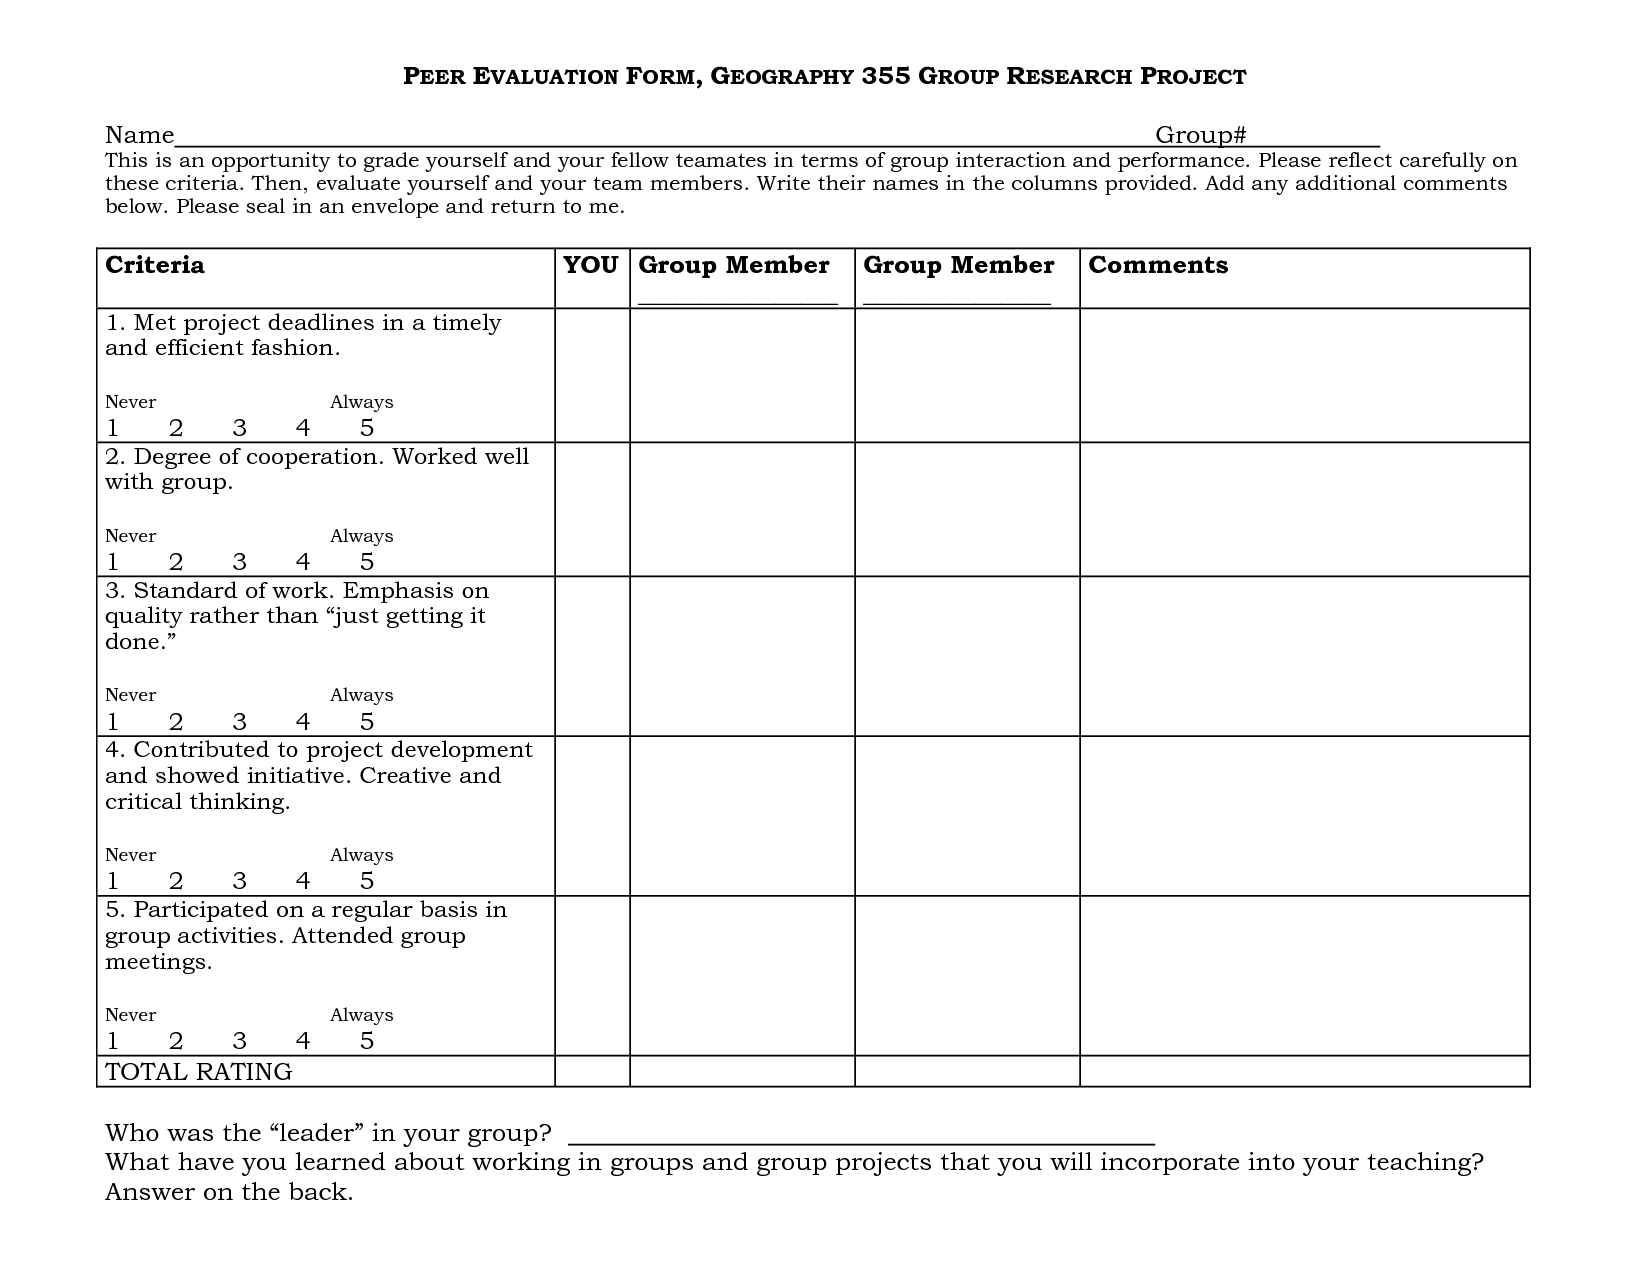 Group Project Peer Evaluation Form With Images